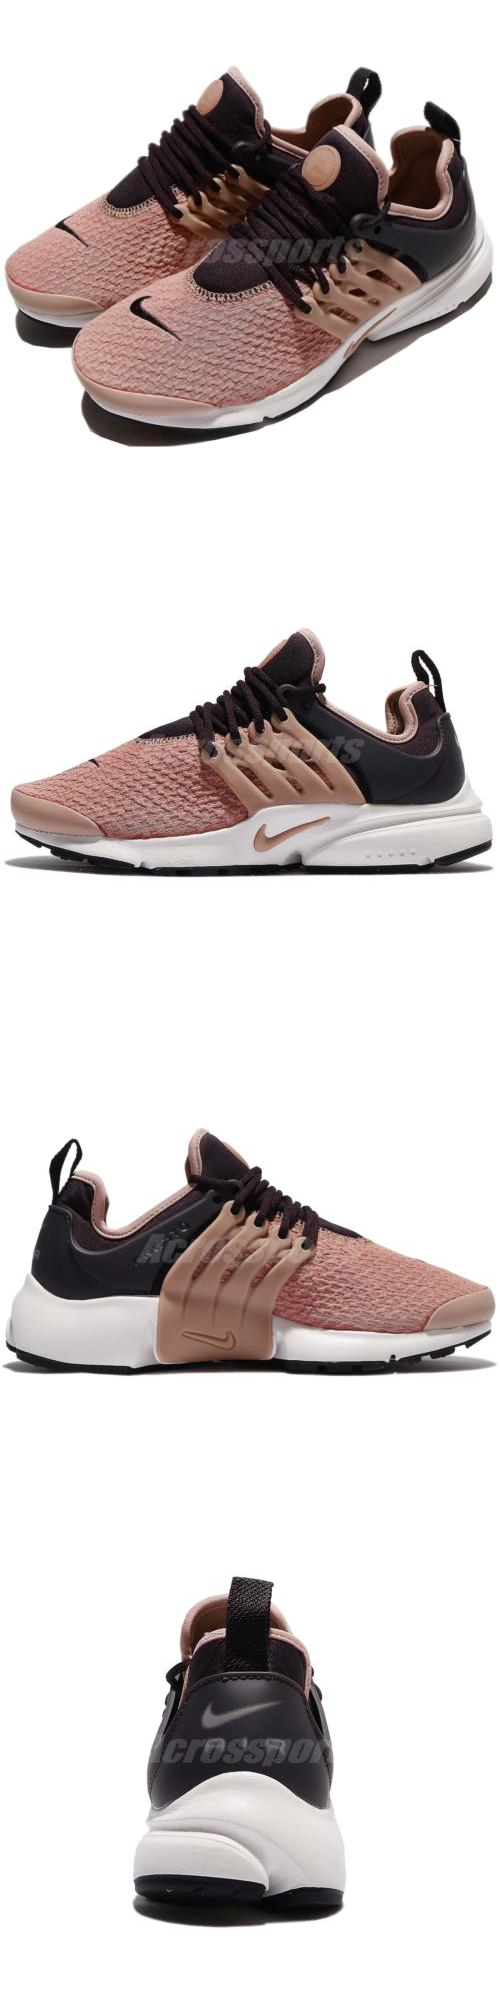 sneakers for cheap 754b1 8923e Women 158953  Wmns Nike Air Presto Port Wine Particle Pink Women Shoes  Sneakers 878068-604 -  BUY IT NOW ONLY   114.99 on eBay!